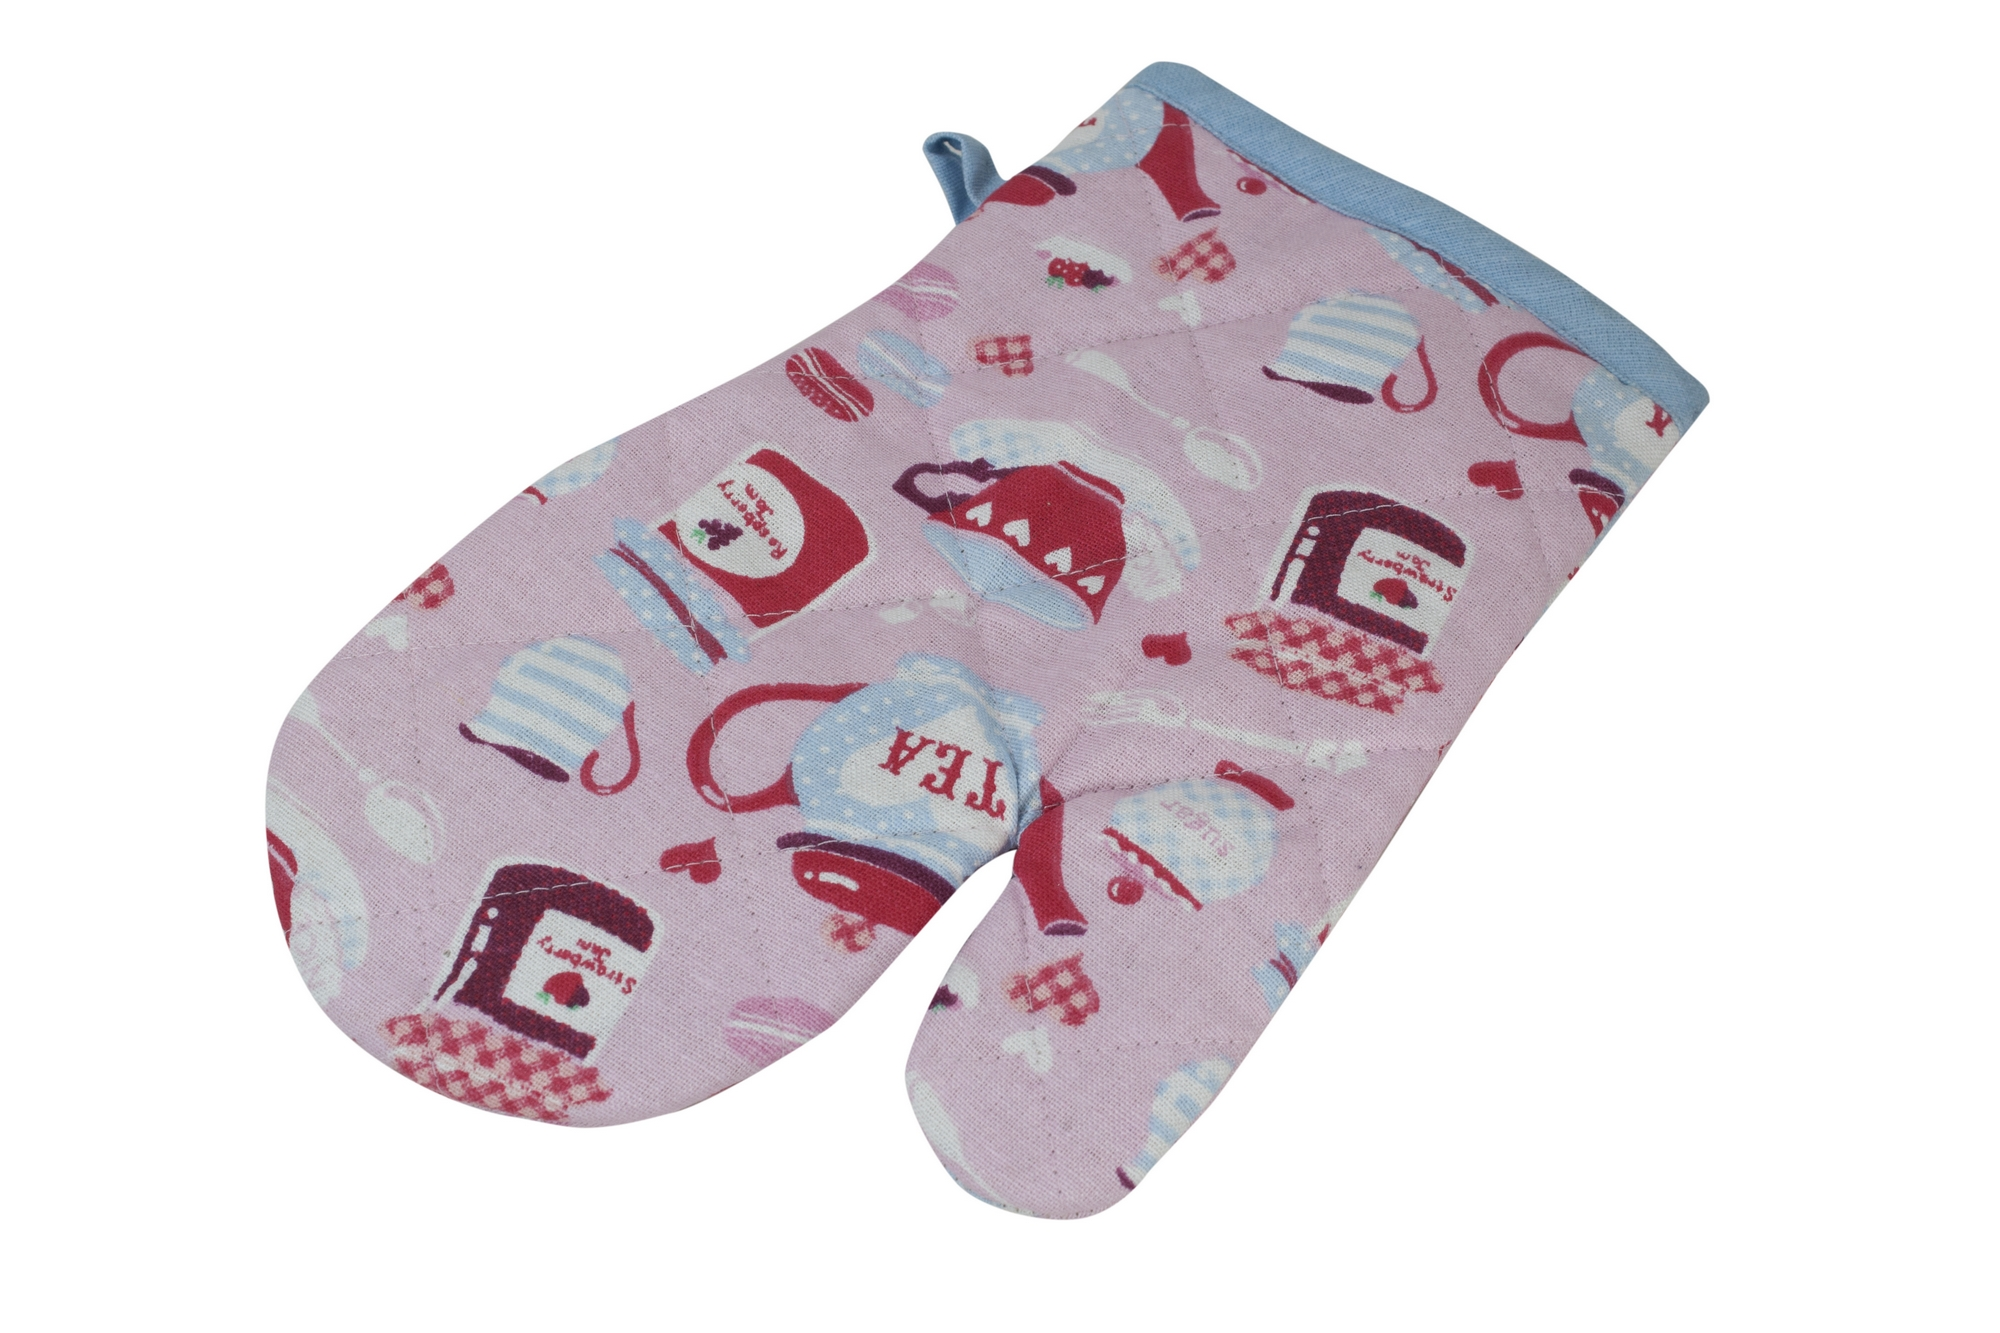 Jam and Tea oven mitt